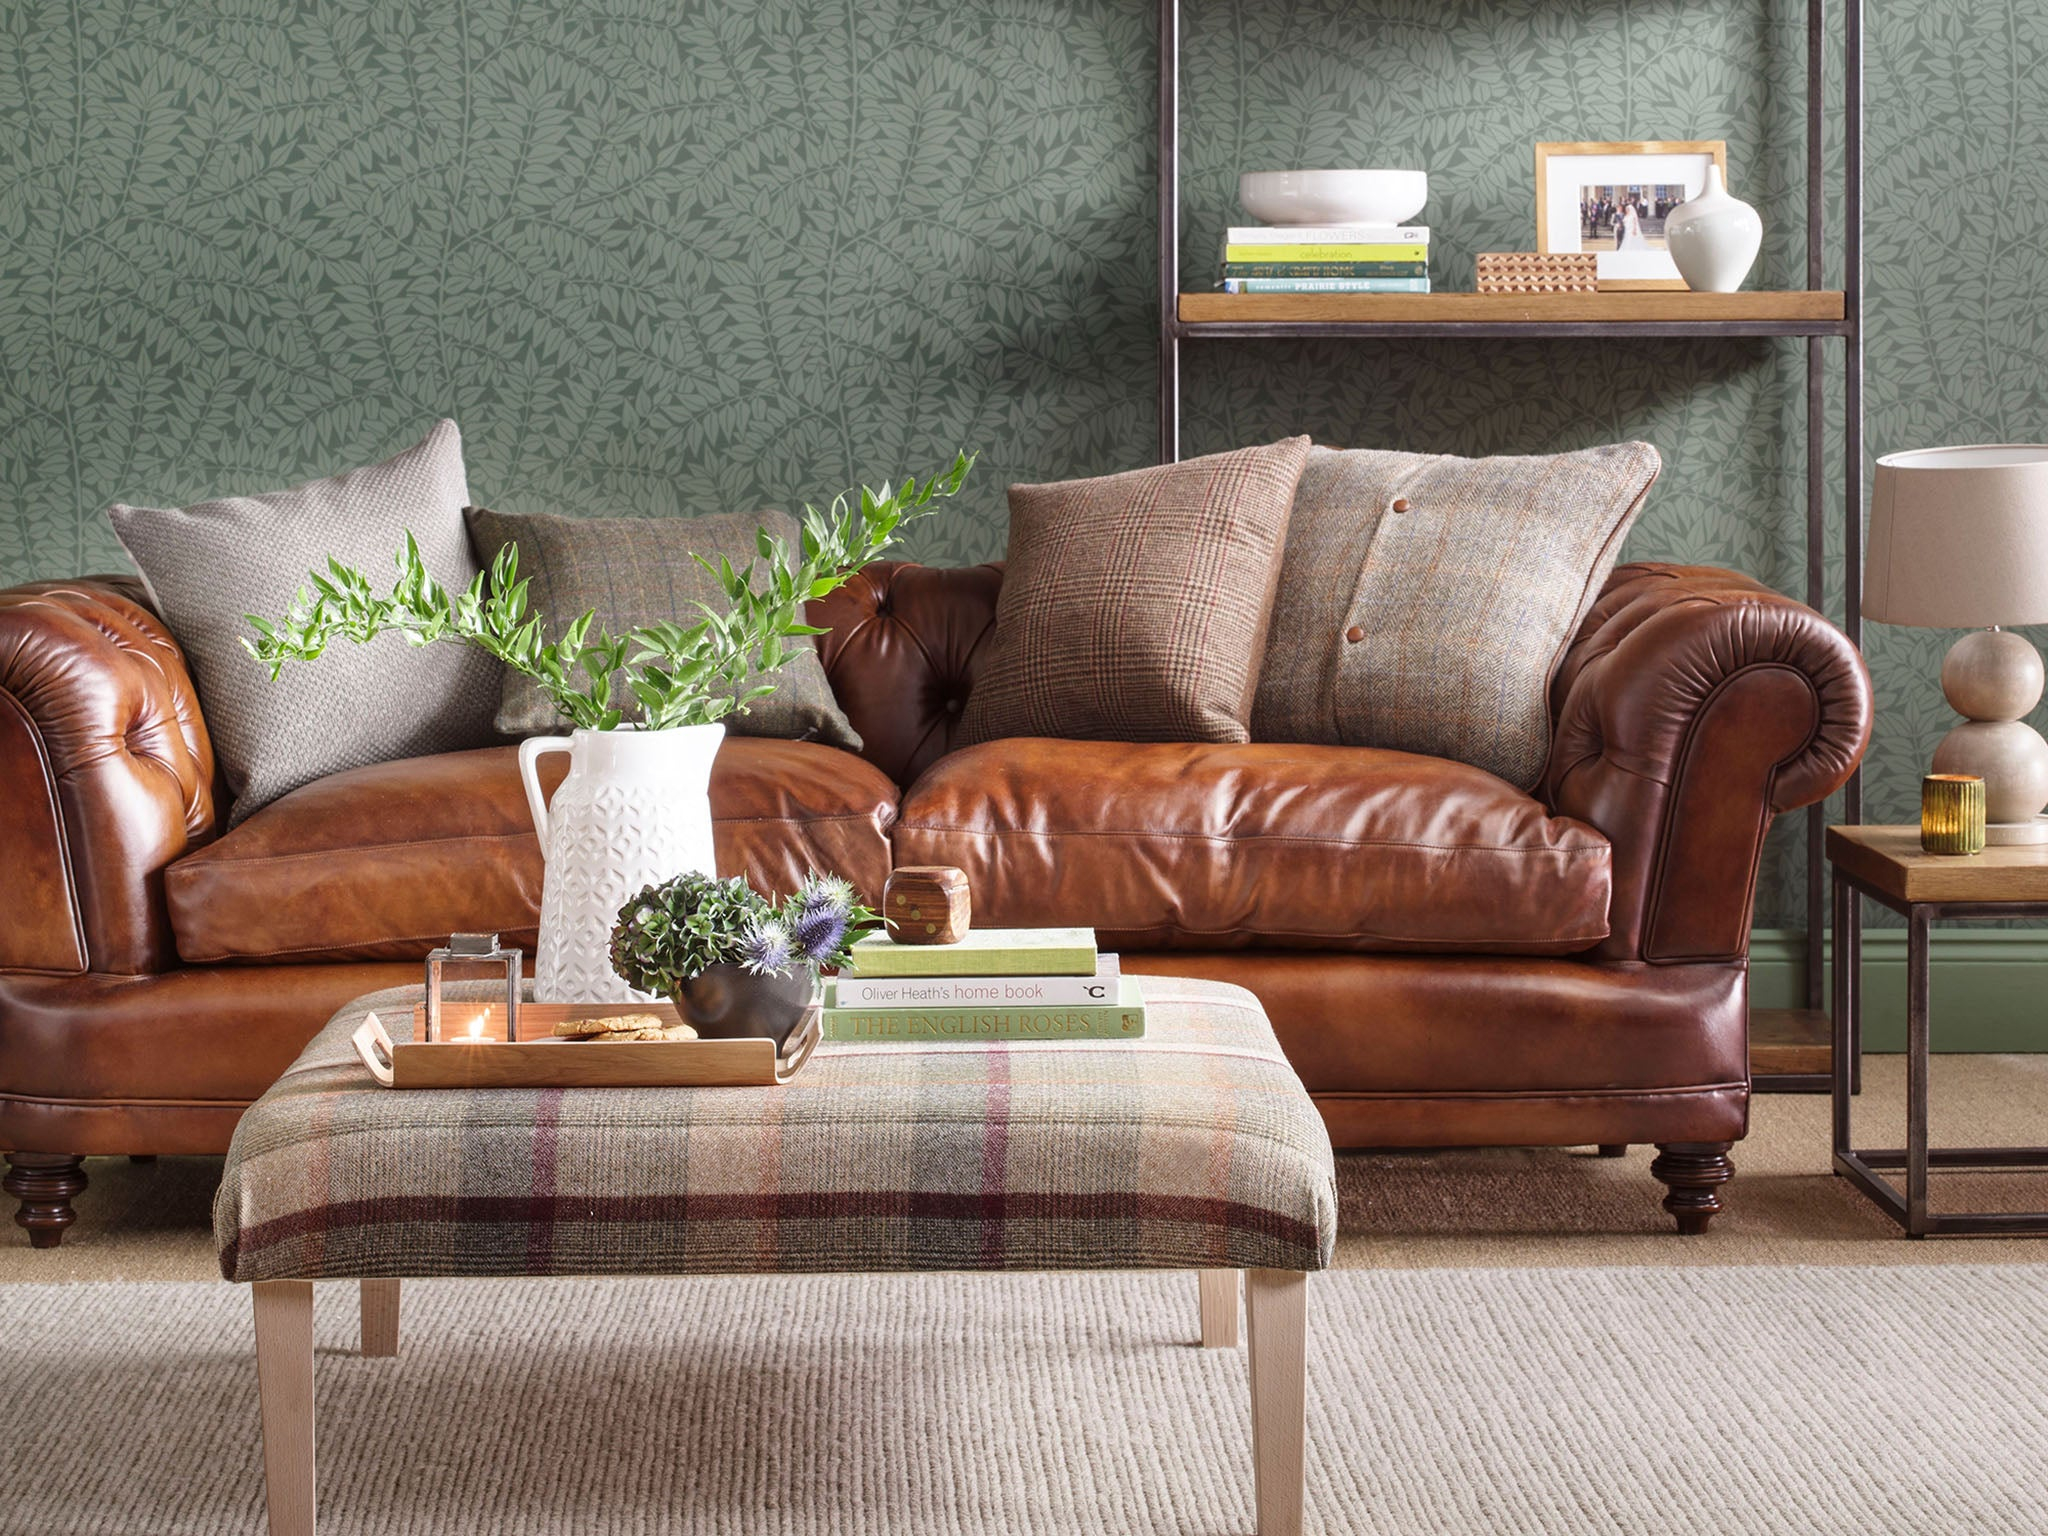 10 Best Leather Sofas The Independent pertaining to dimensions 2048 X 1536